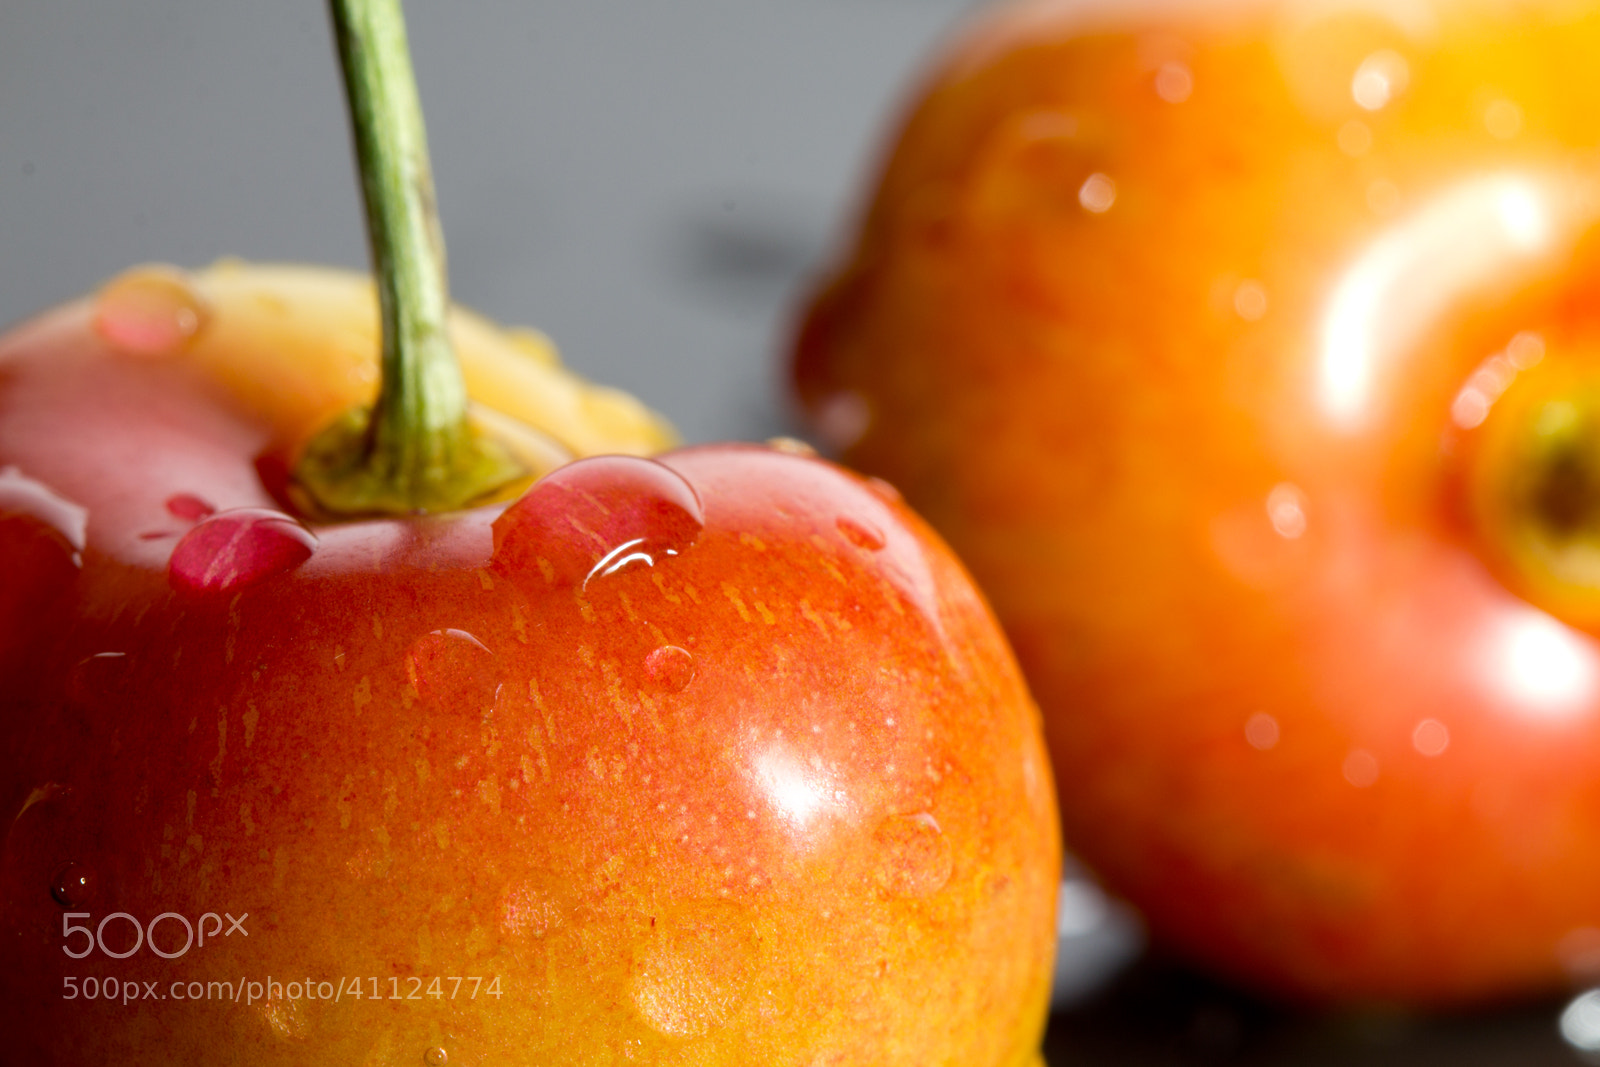 Photograph Rainier Cherries by Ivanka J. Kostial on 500px